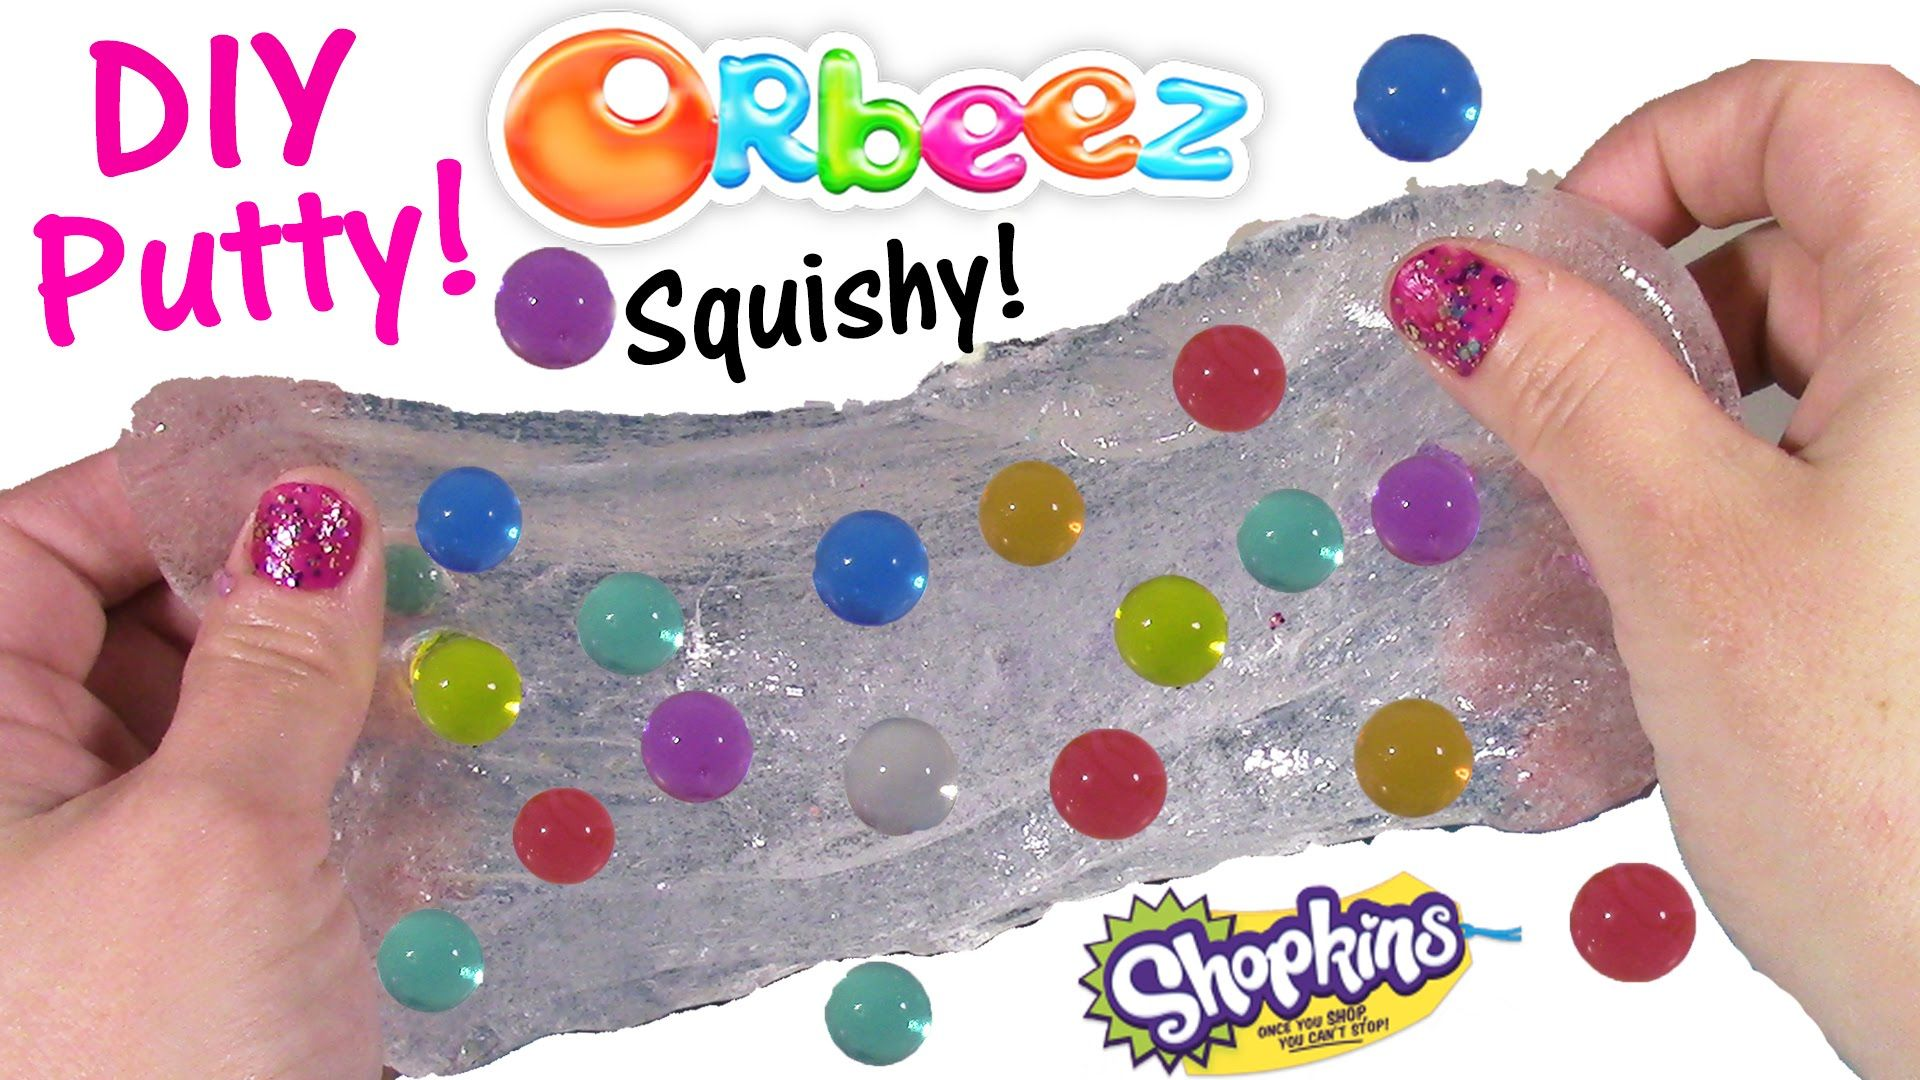 Diy Orbeez Glass Putty Make Your Own Fun Squishy Slimy Putty